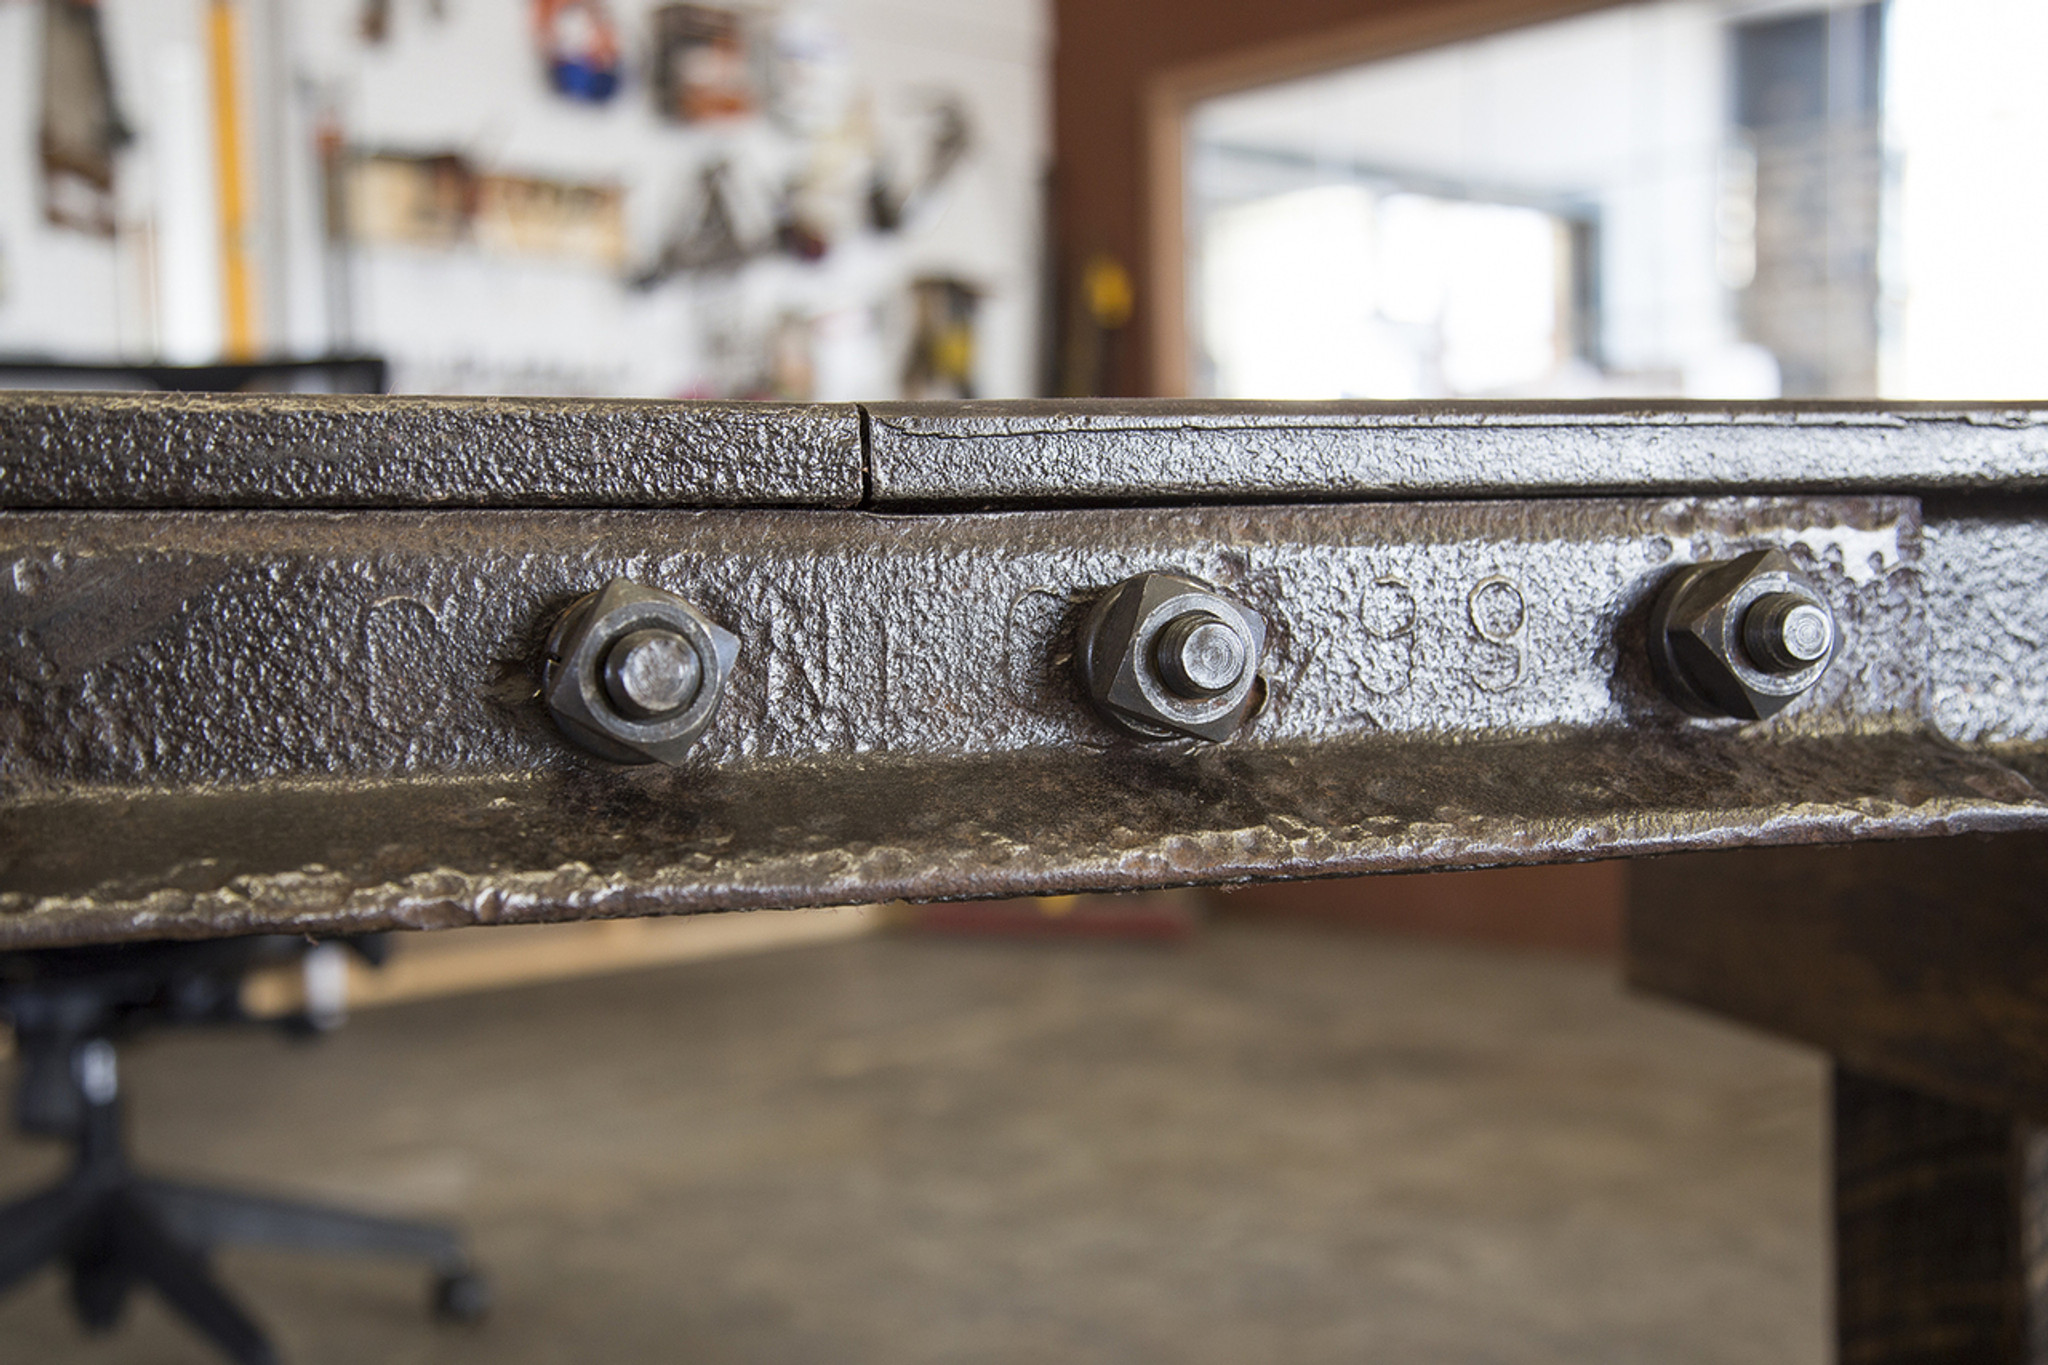 executive ceo desk from reclaimed industrial historical artifacts